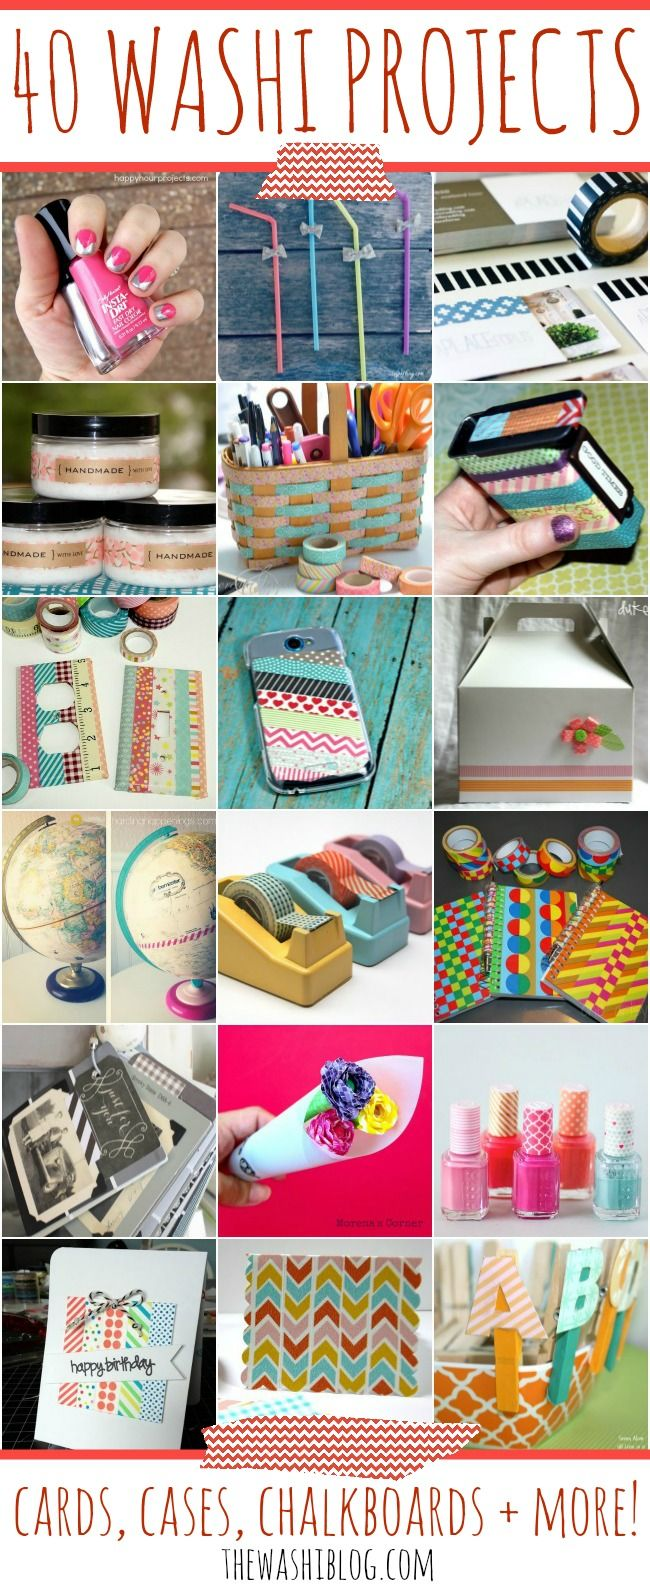 Washi Tape Crafts 309 Best Washi Tape Ideas Images On Pinterest  Masking Tape Diy